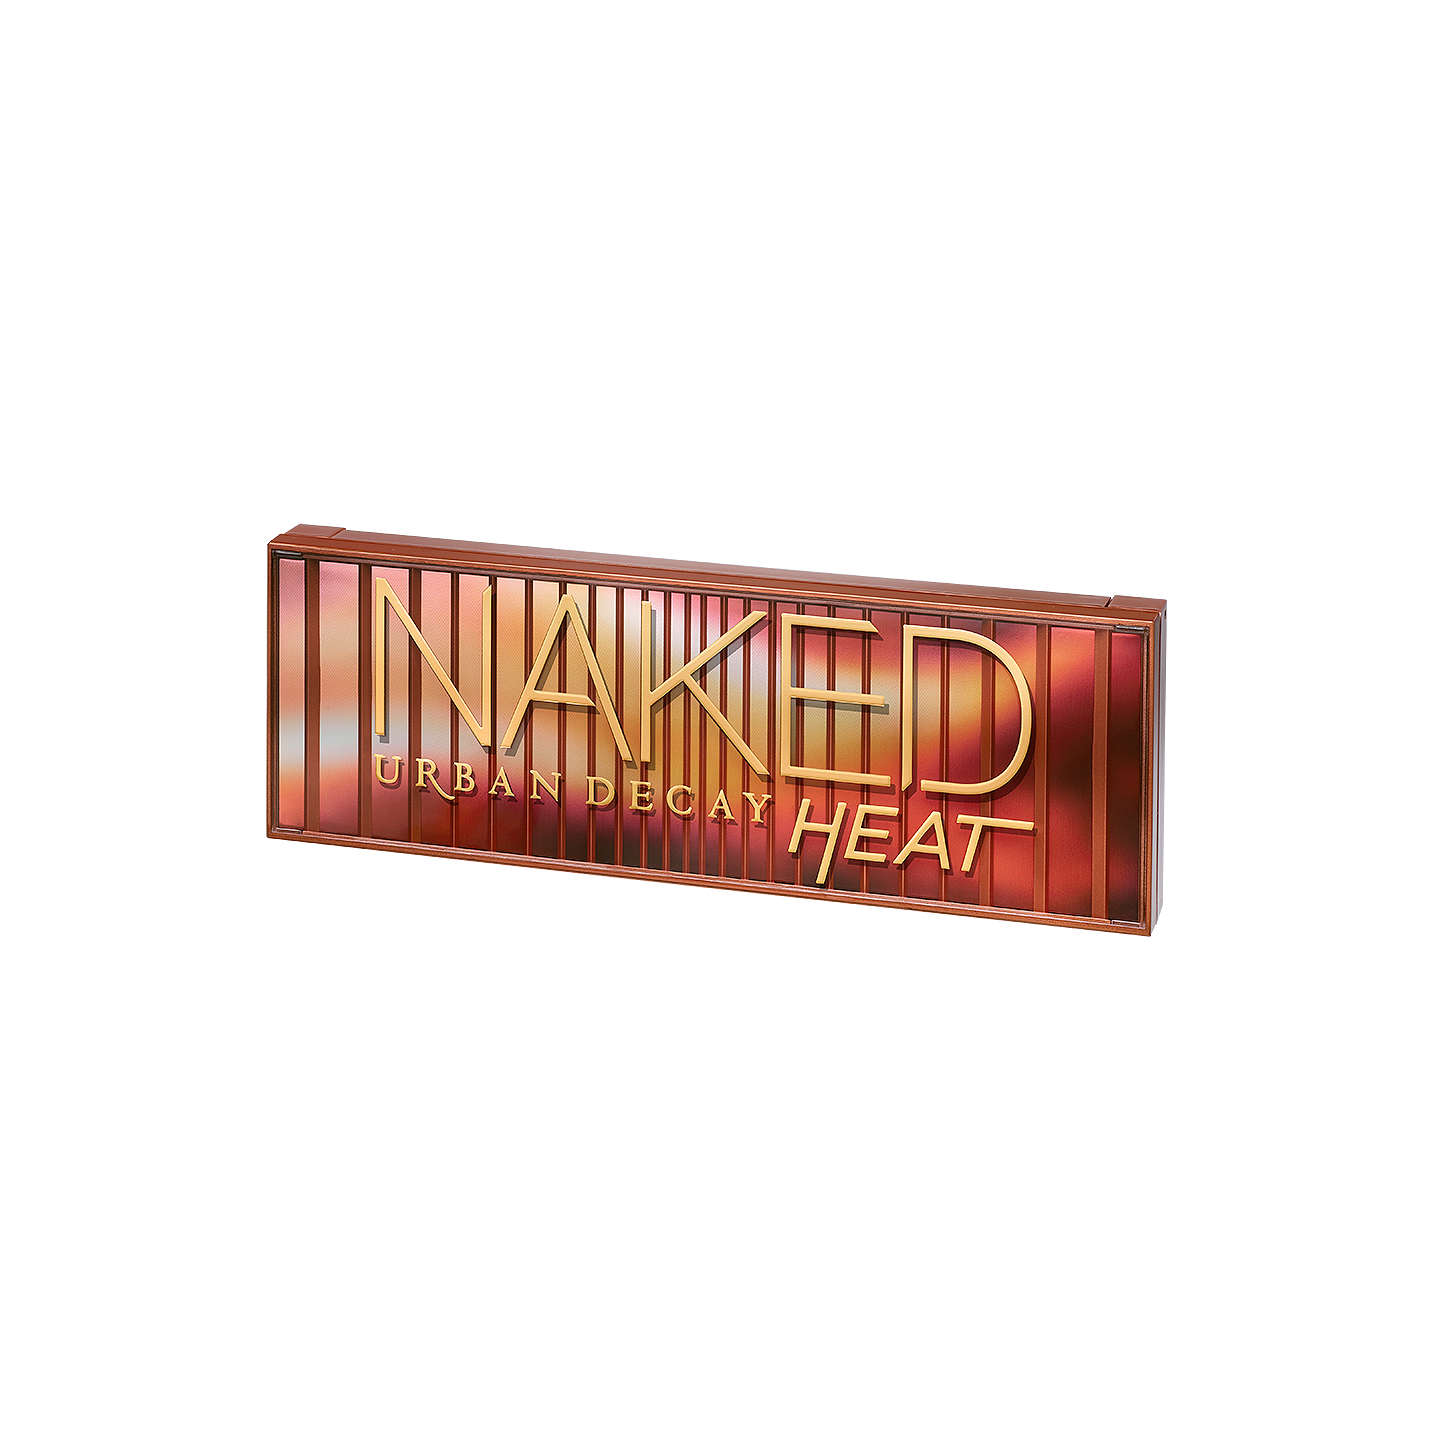 Urban Decay Naked Heat Palette at John Lewis